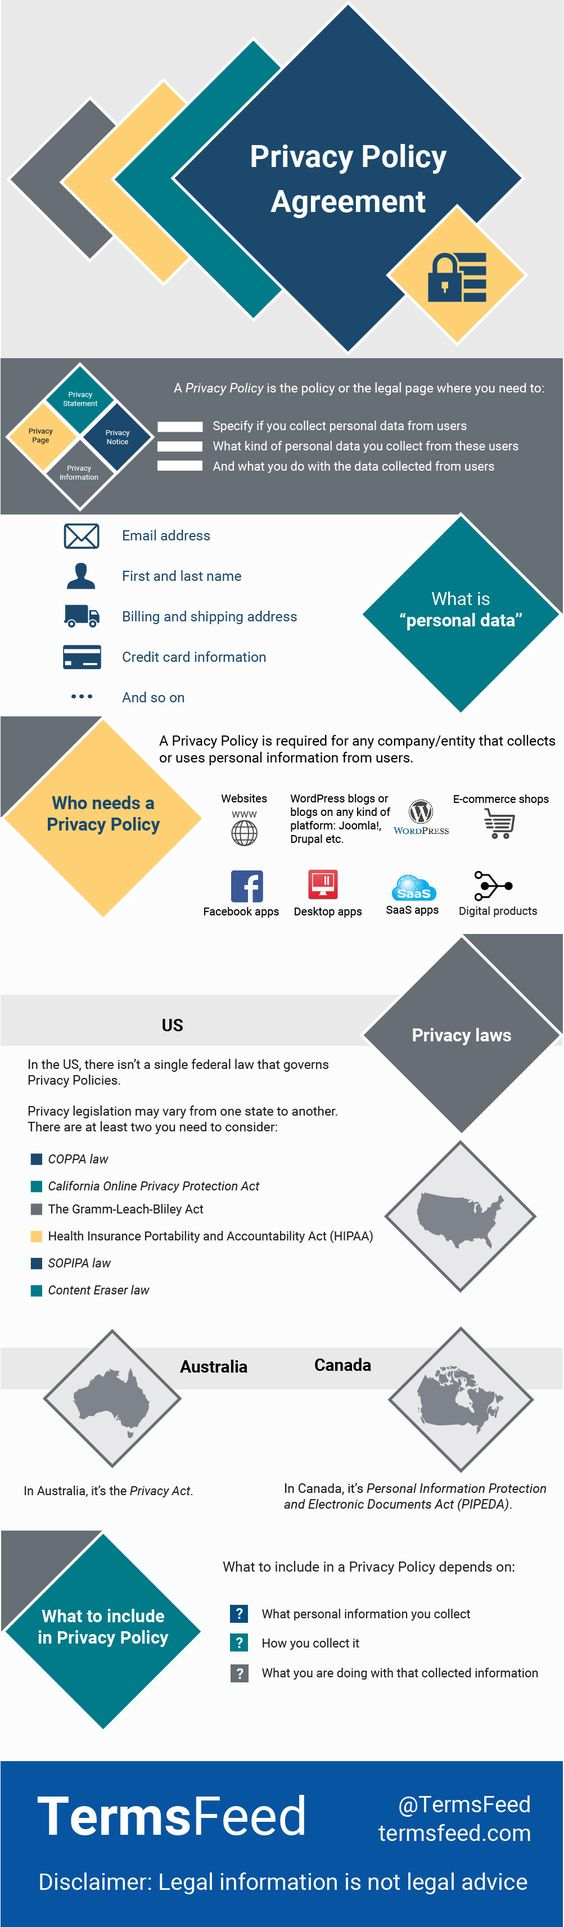 sample privacy policy template termsfeed Privacy Policy id=92246